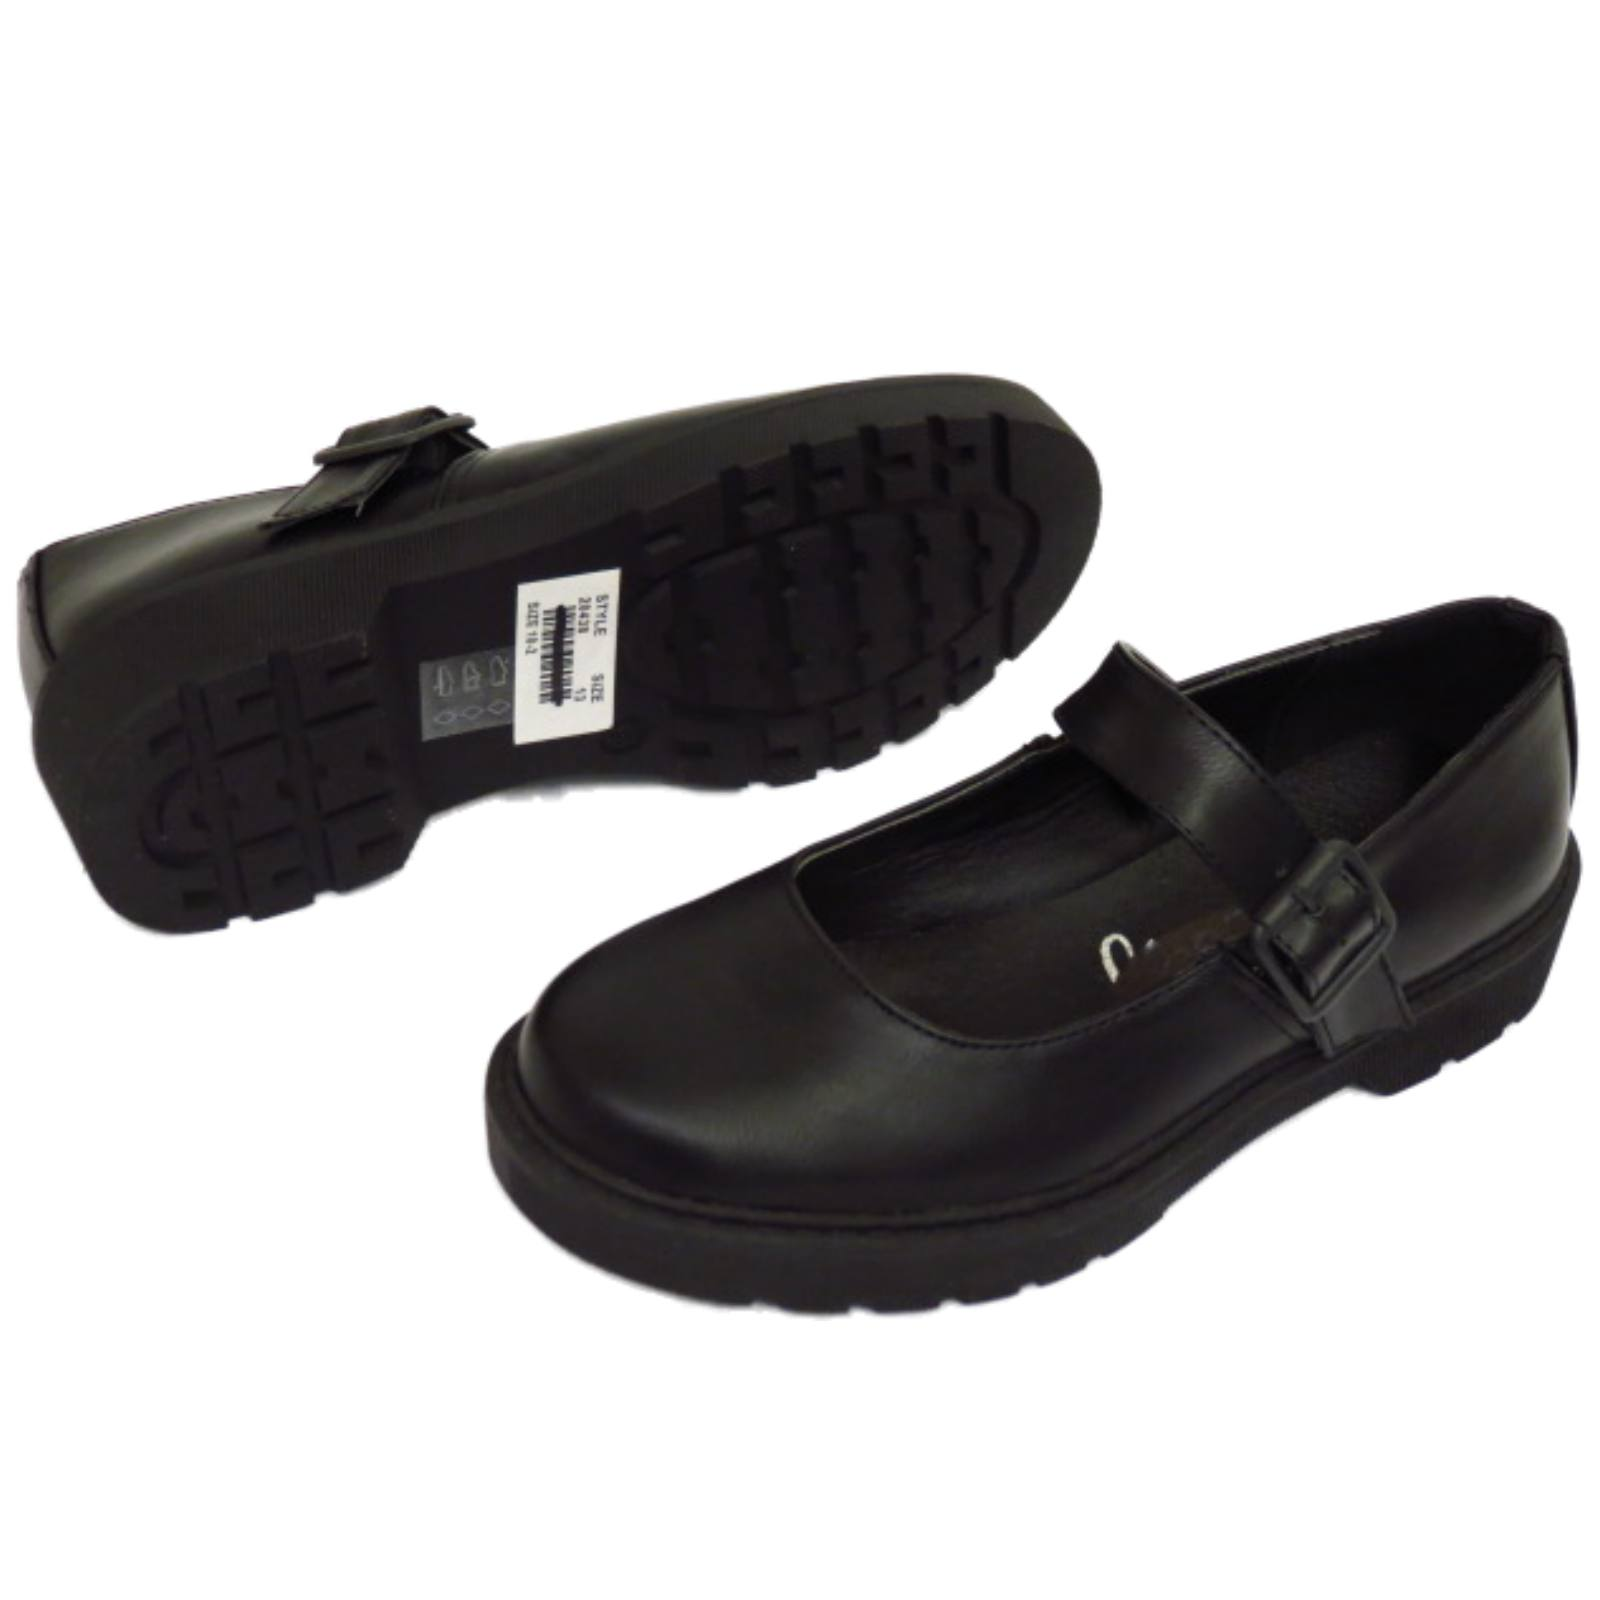 GIRLS-KIDS-CHILDRENS-BUCKLE-T-BAR-BLACK-SCHOOL-PUMPS-DOLLY-SMART-FLAT-SHOES-10-5 thumbnail 37